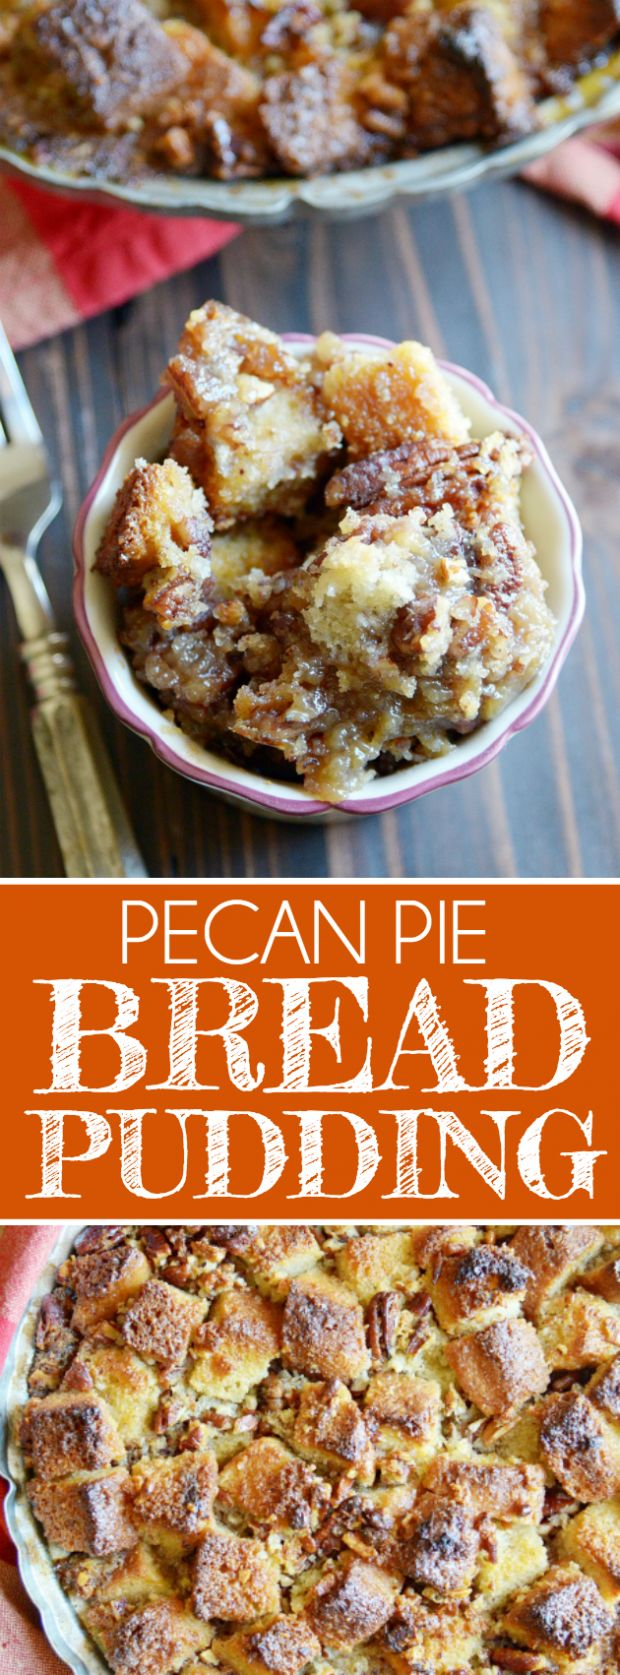 bread pudding with dulce de leche sauce see more 1 apple bread pudding ...